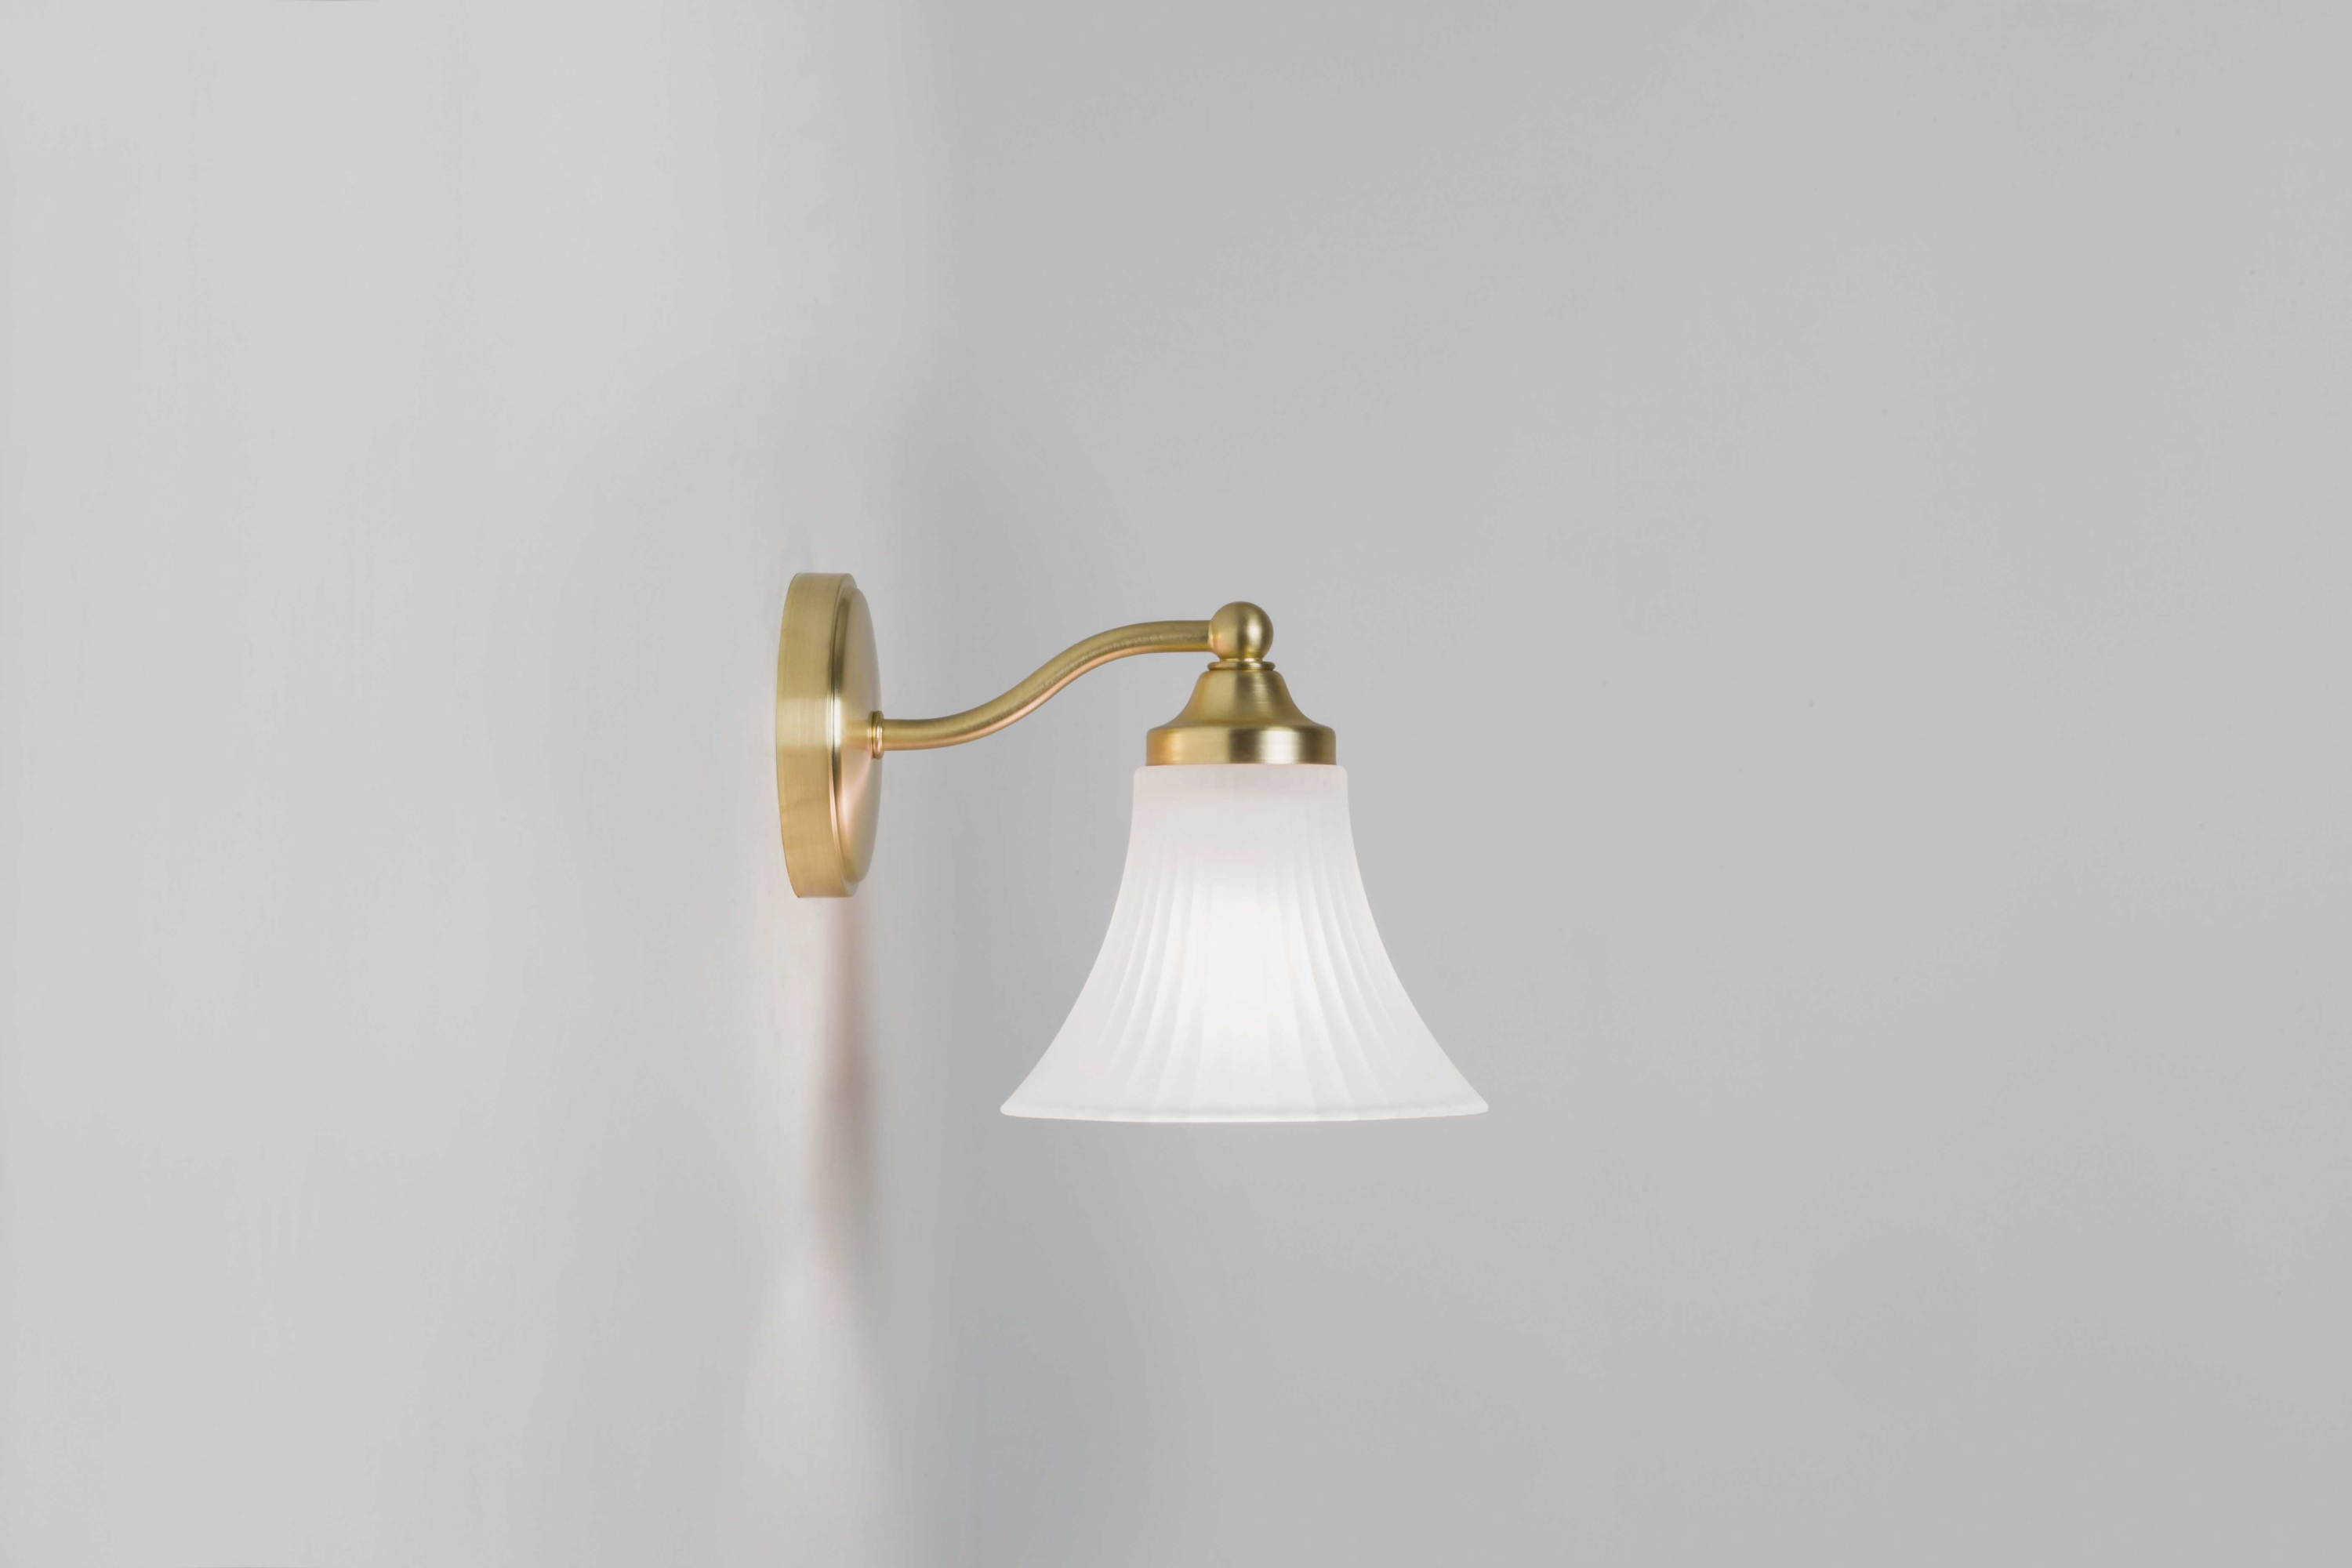 Astro Nena matt gold bell shaped bathroom wall light 1 x 40W G9 IP44